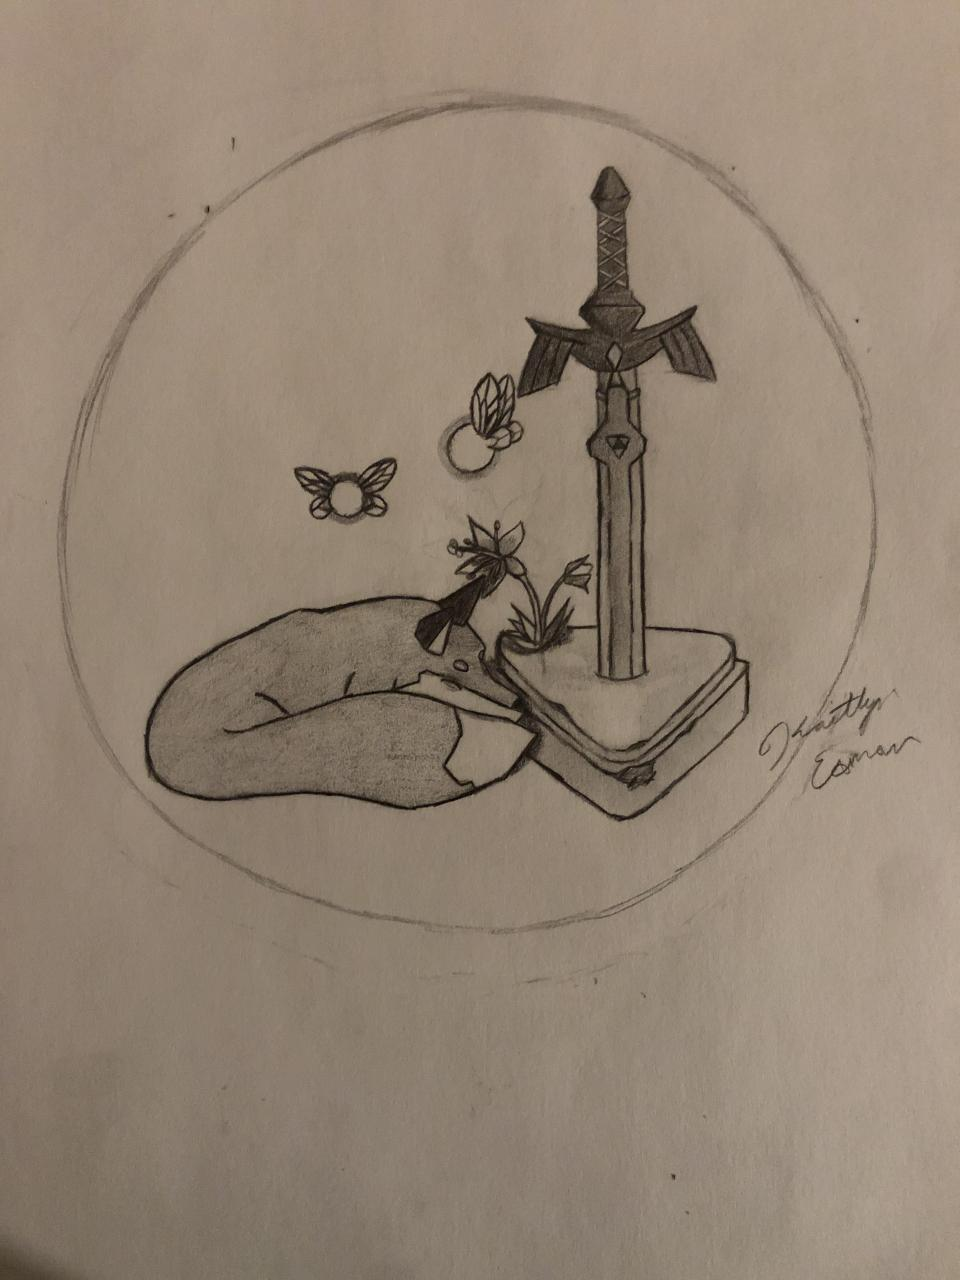 I want to get this tattoo I designed on my shoulder blade. What's the smallest I can get it without the finer details disappearing? Also, what would you recommend in terms of coloring or no coloring? Sorry for reposting the artwork :)